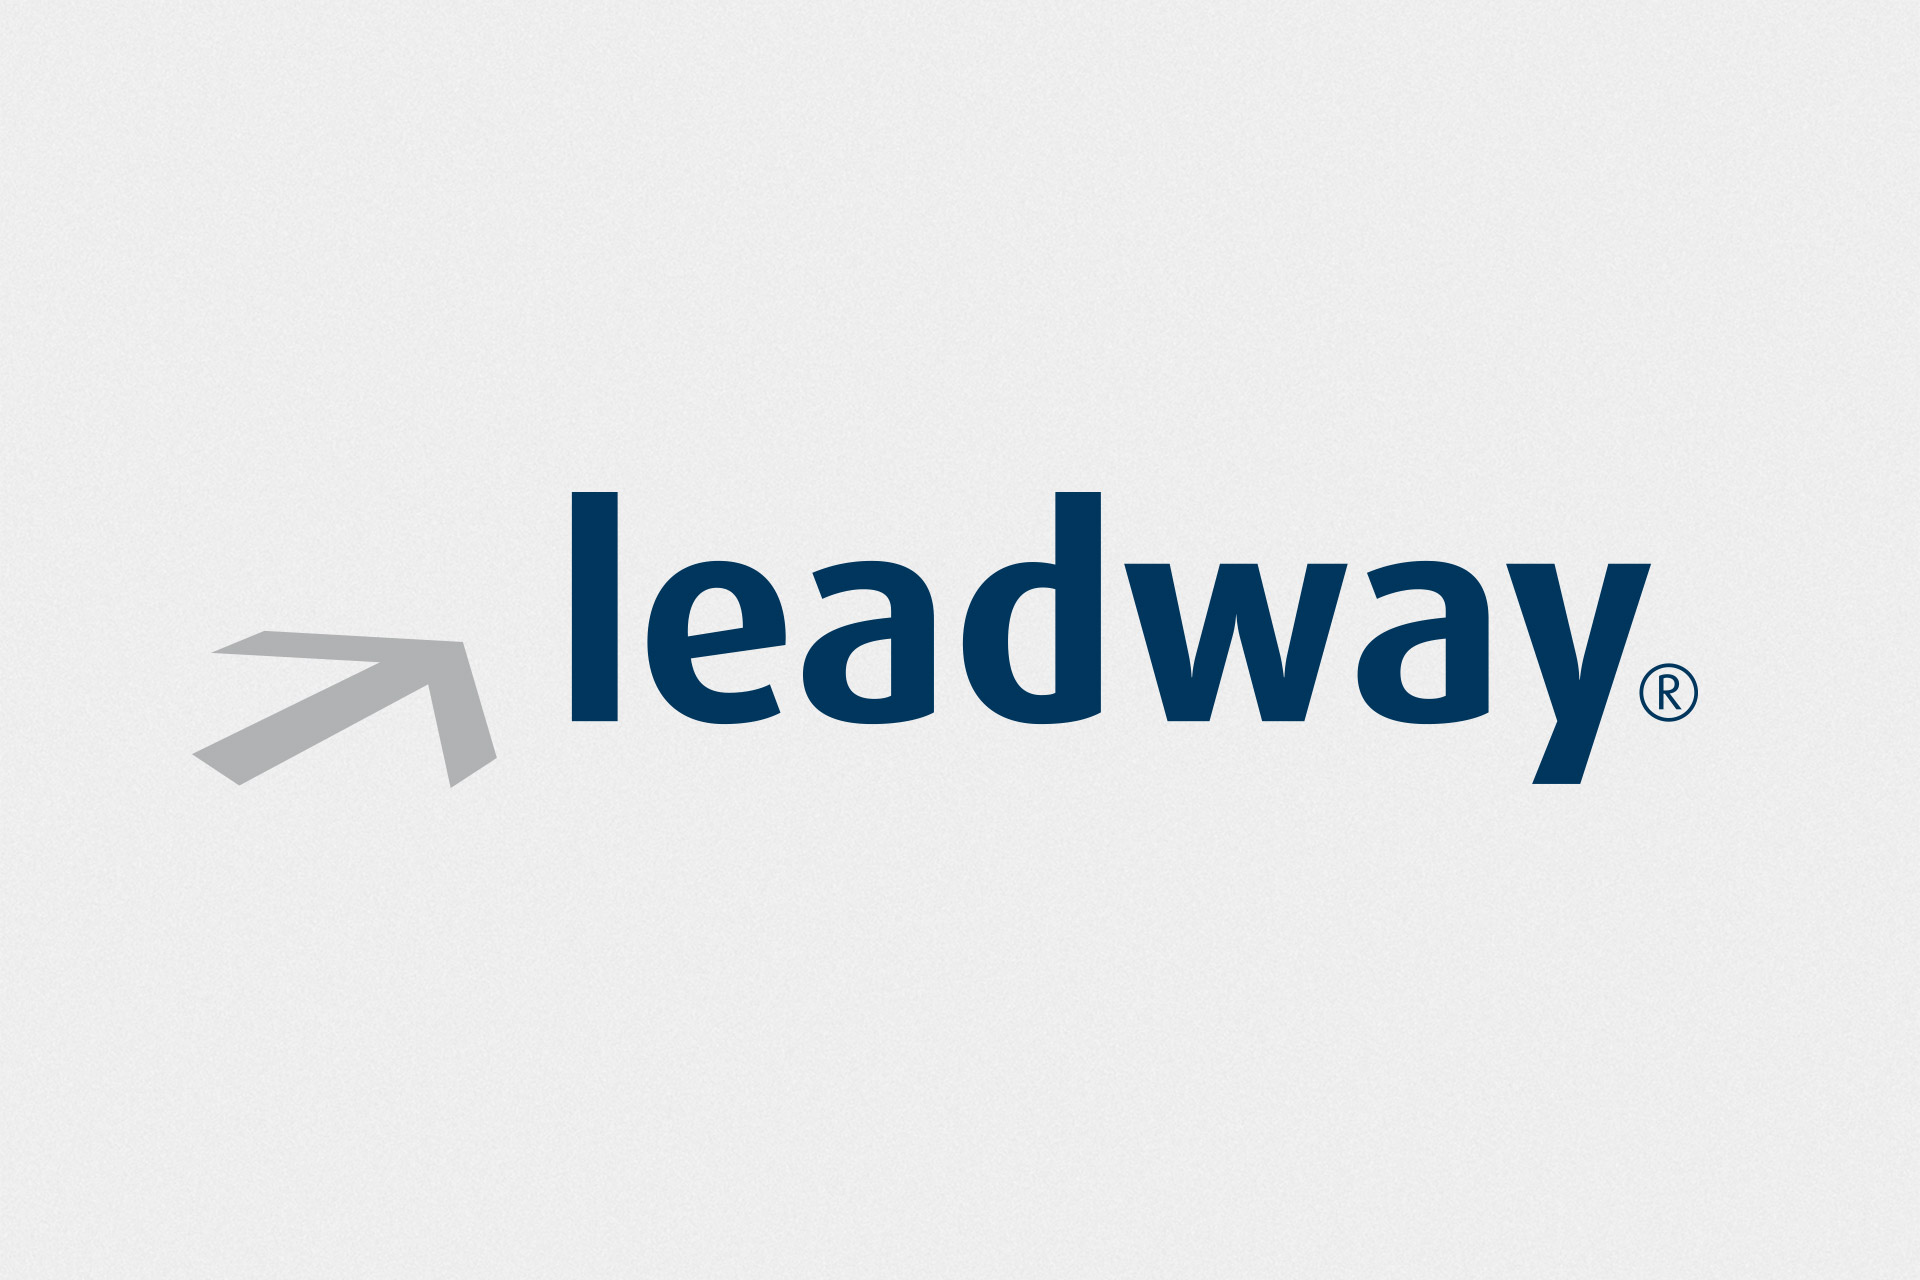 Corporate Design für Leadway, Beispiel Logodesign